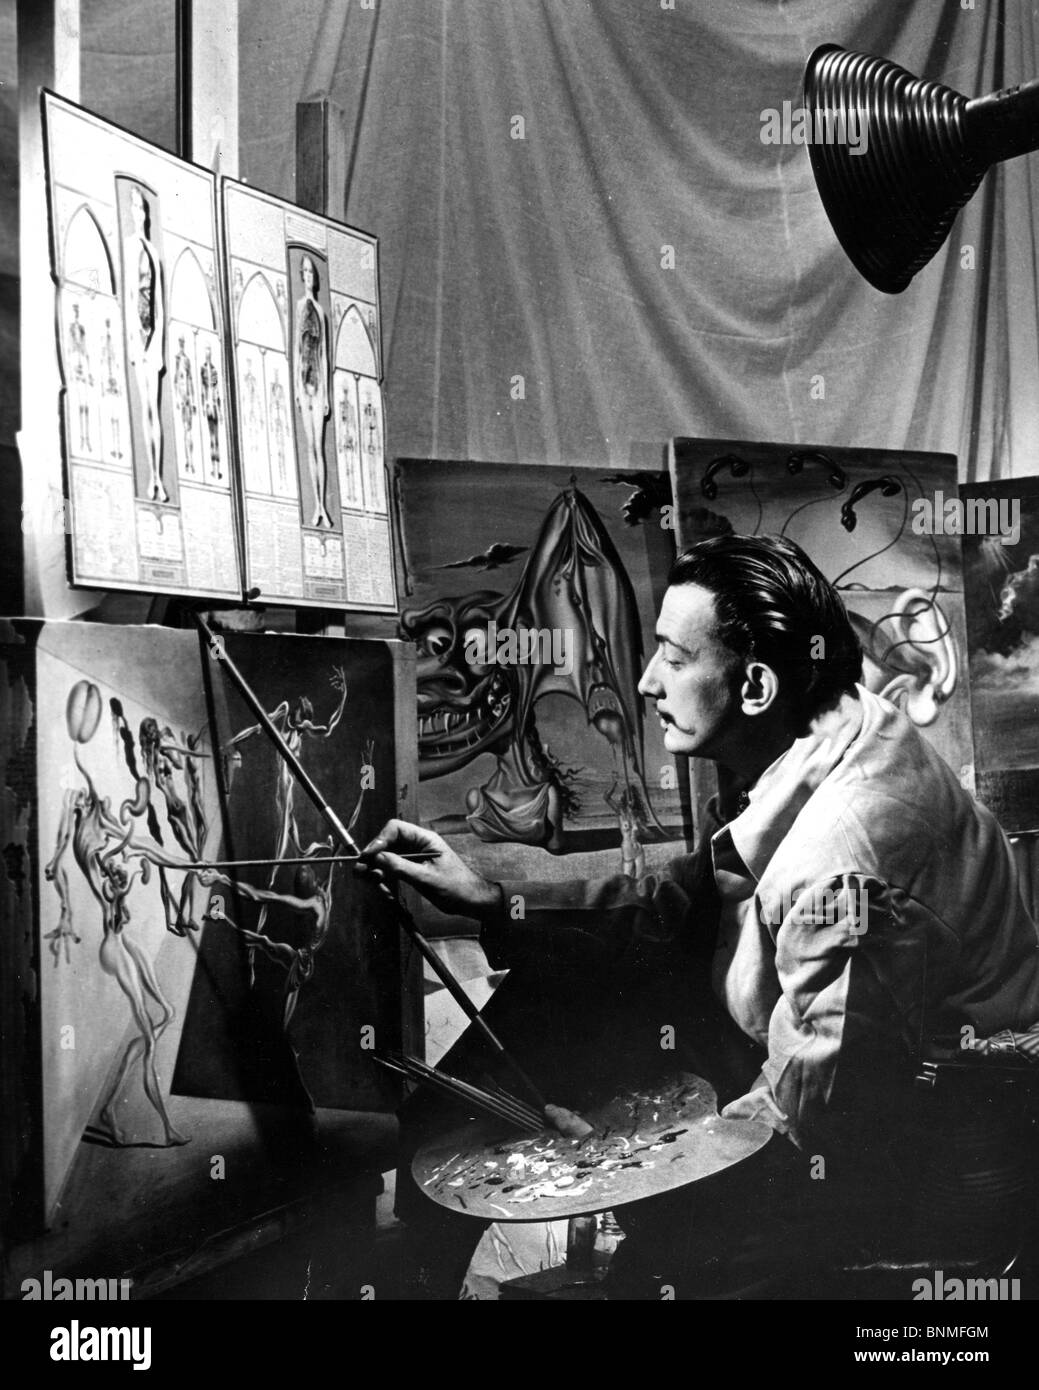 SALVADOR DALI  (1984-89) Spanish artist working while living in the US in 1940 - see Description below Stock Photo